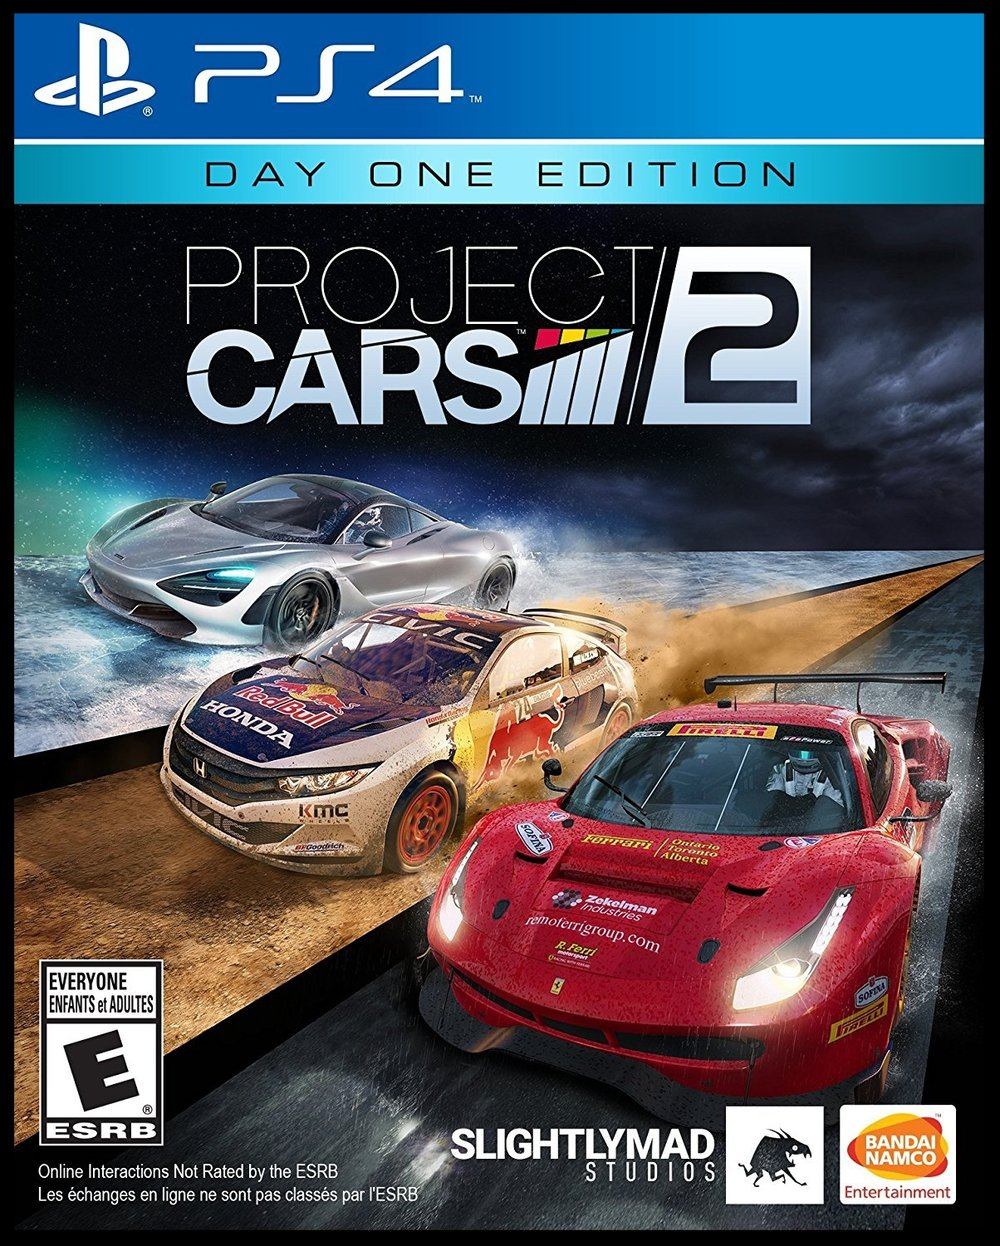 Watson Wu - Project Cars 2 - Box Cover Art - PS4.jpg